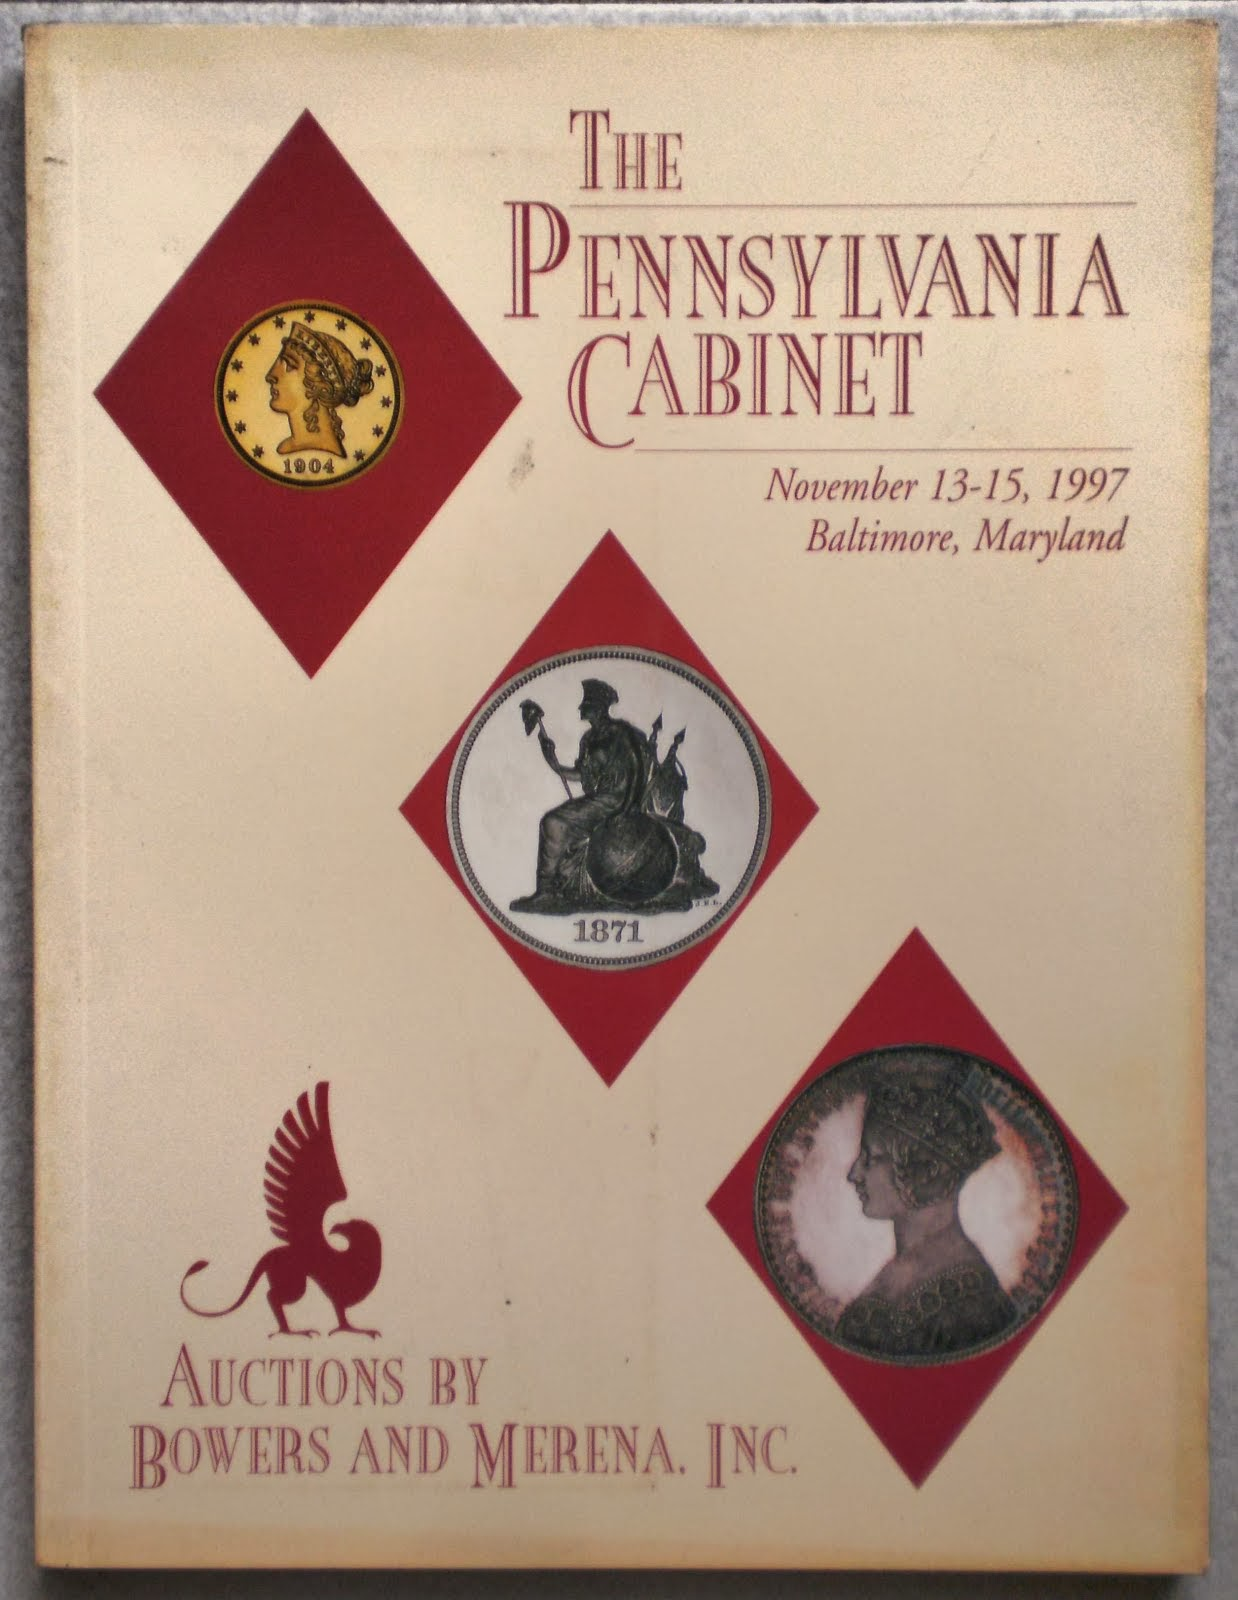 The Pennsylvania Cabinet, Baltimare Maryland 1997